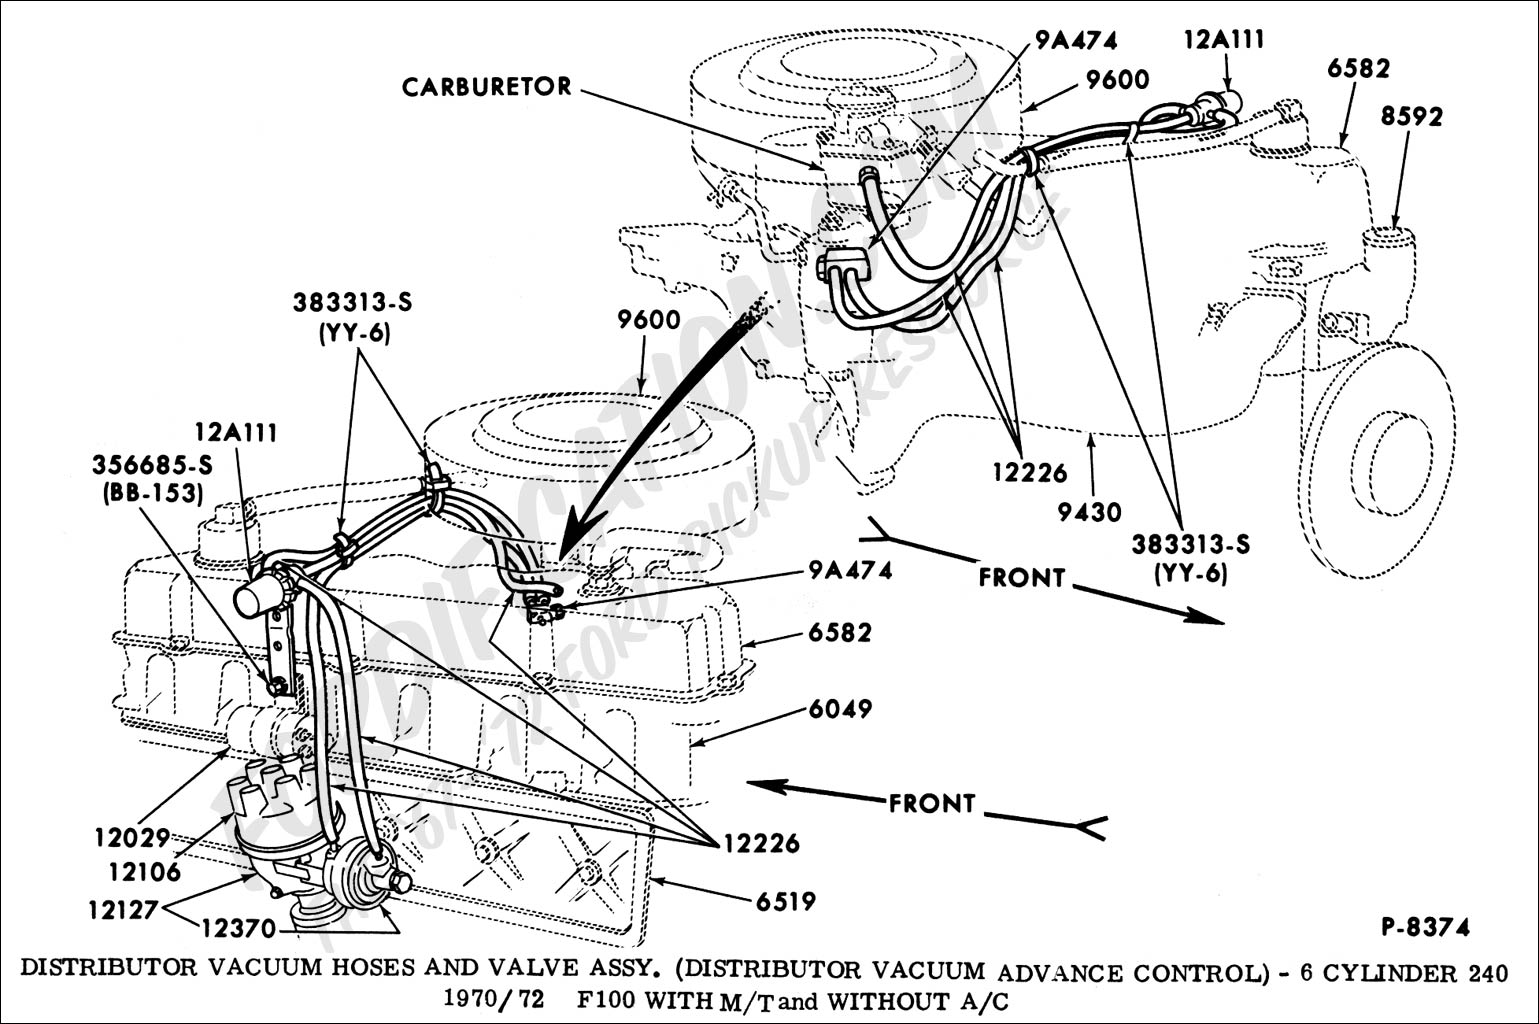 1970 Ford F100 Wiring Diagram furthermore 75 Bronco Wiring Diagram likewise LG7y 15575 together with 71 Ford F100 Wiring Diagram together with 1968 Mustang Wiring Diagrams. on 1969 ford mustang wiring diagram